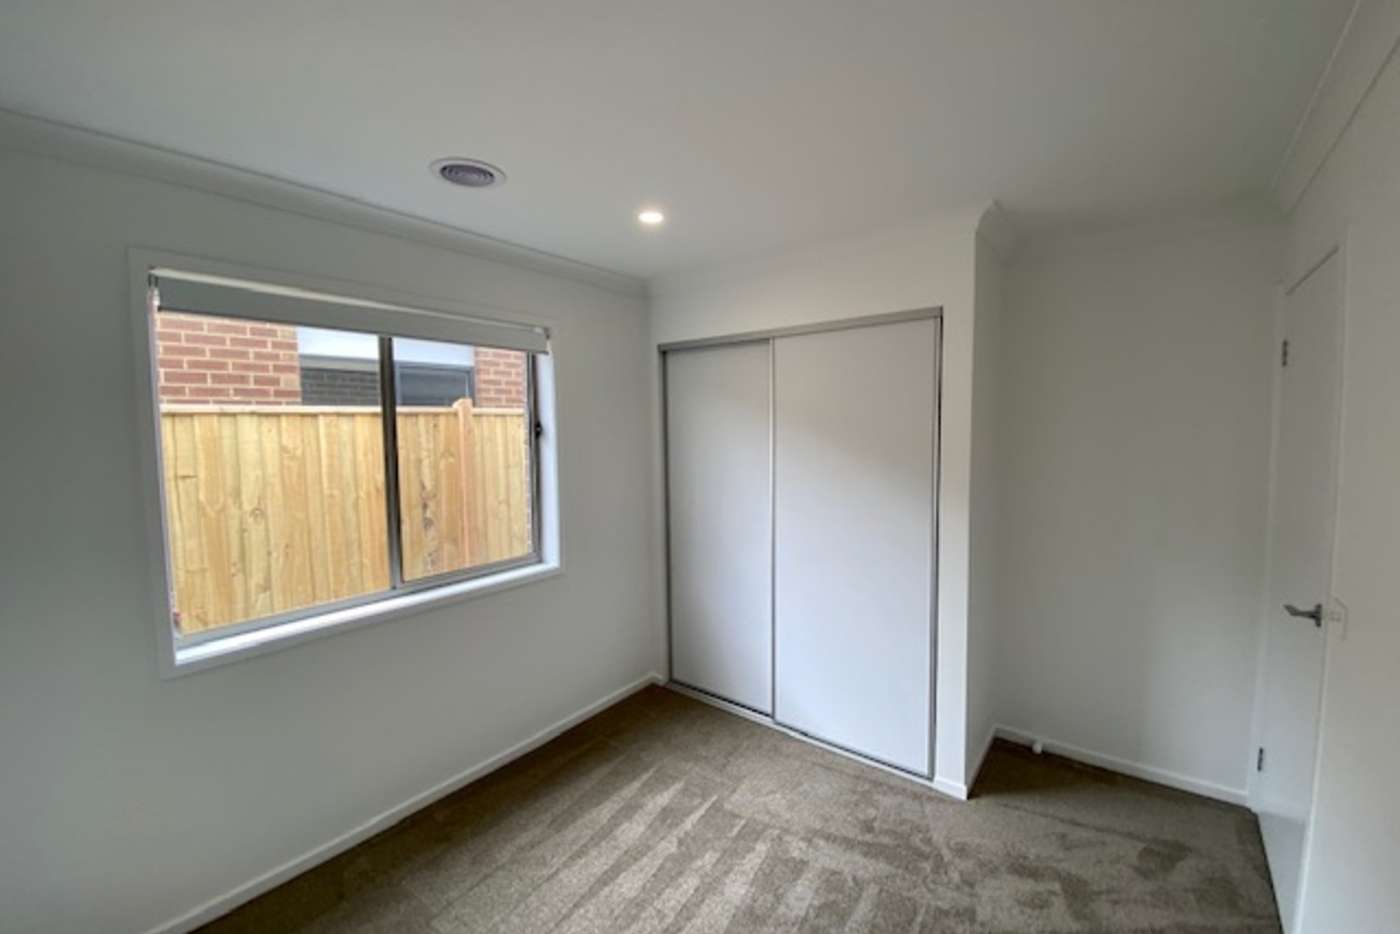 Seventh view of Homely house listing, 480 Casey Fields Boulevard, Cranbourne East VIC 3977